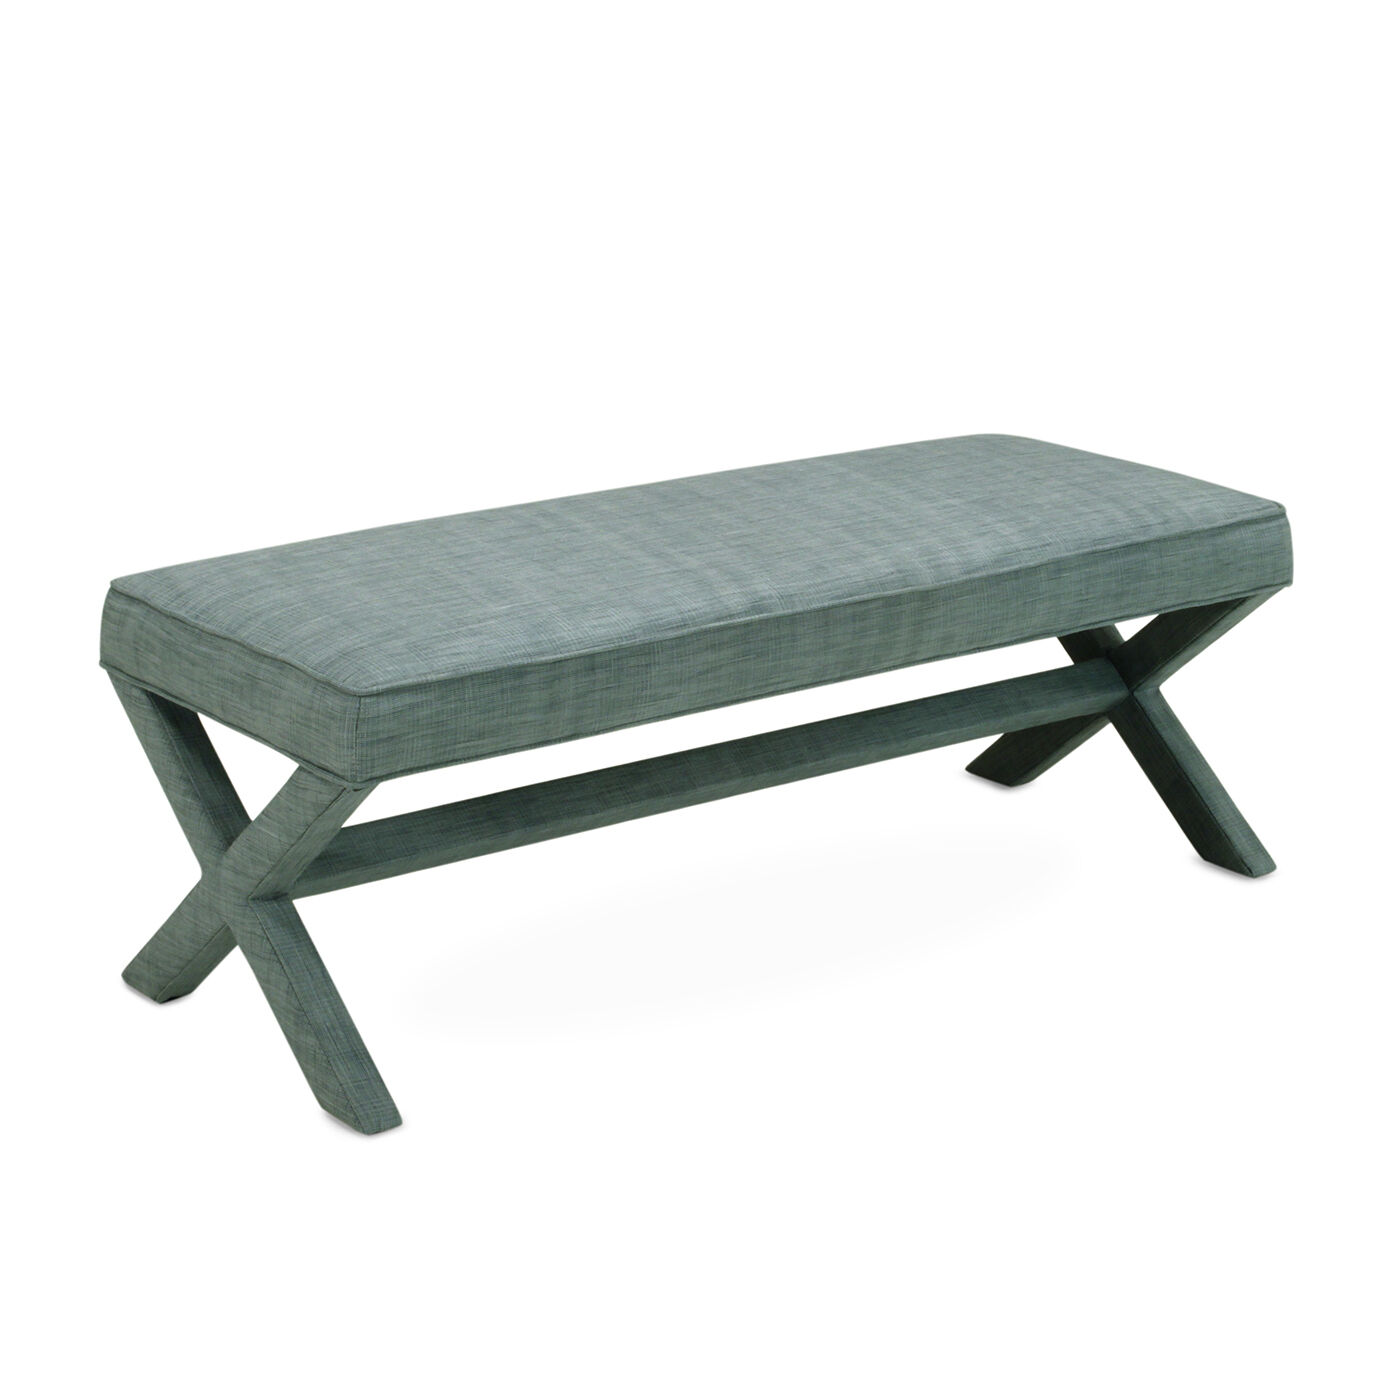 Jonathan Adler | Double X Bench